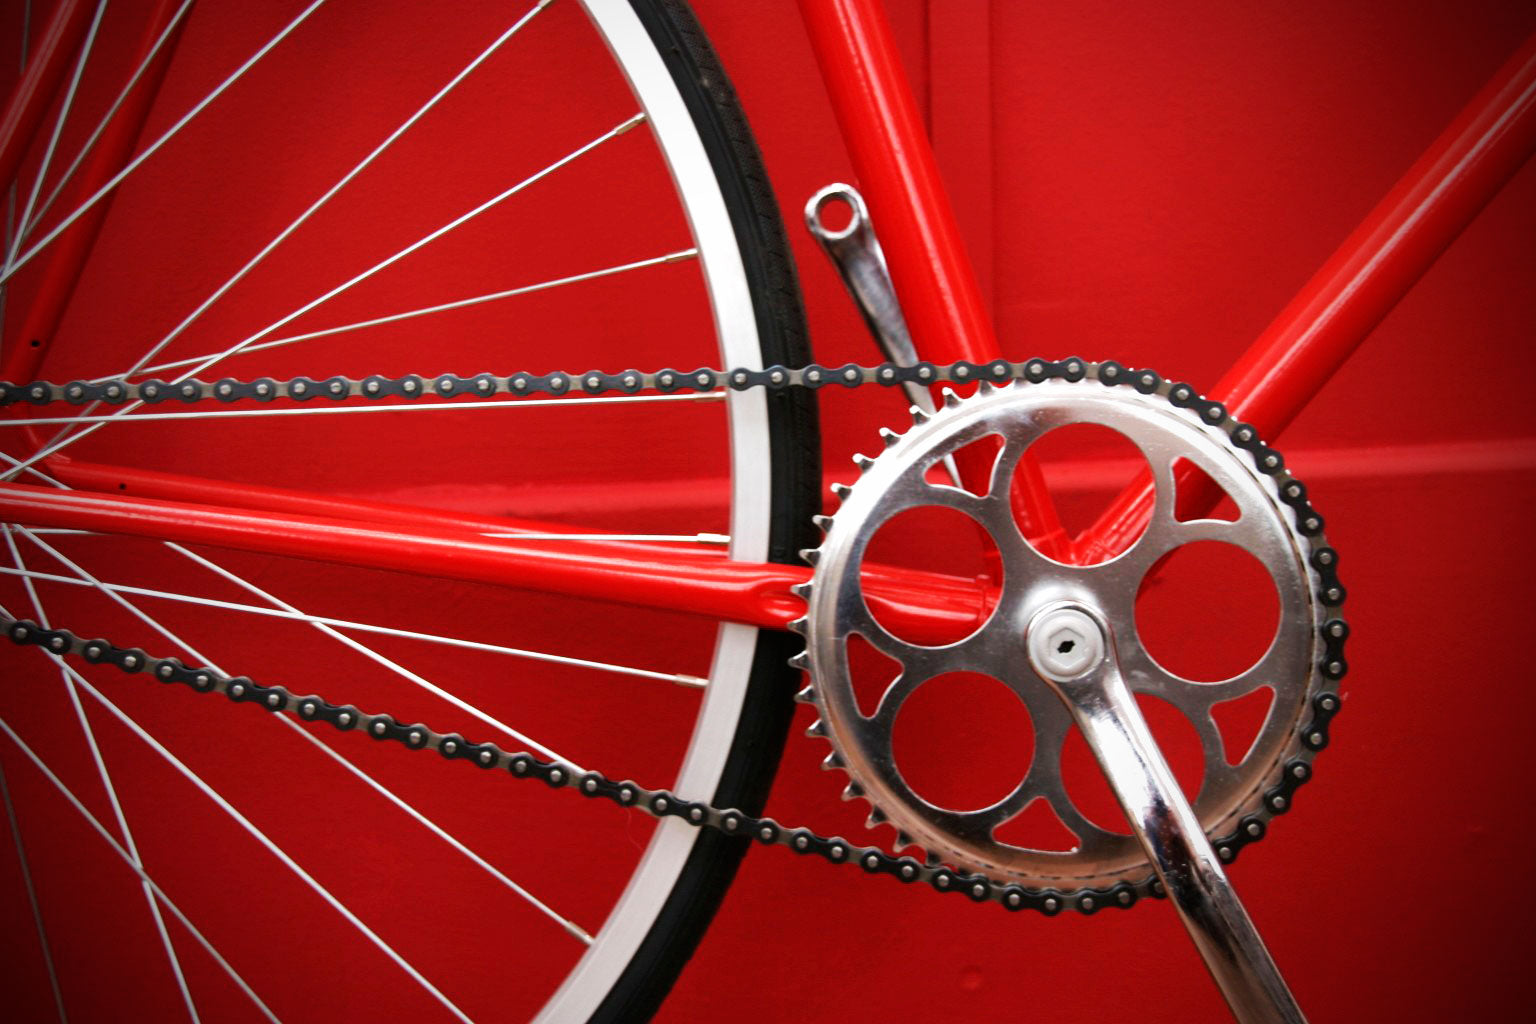 silver crank on red bike